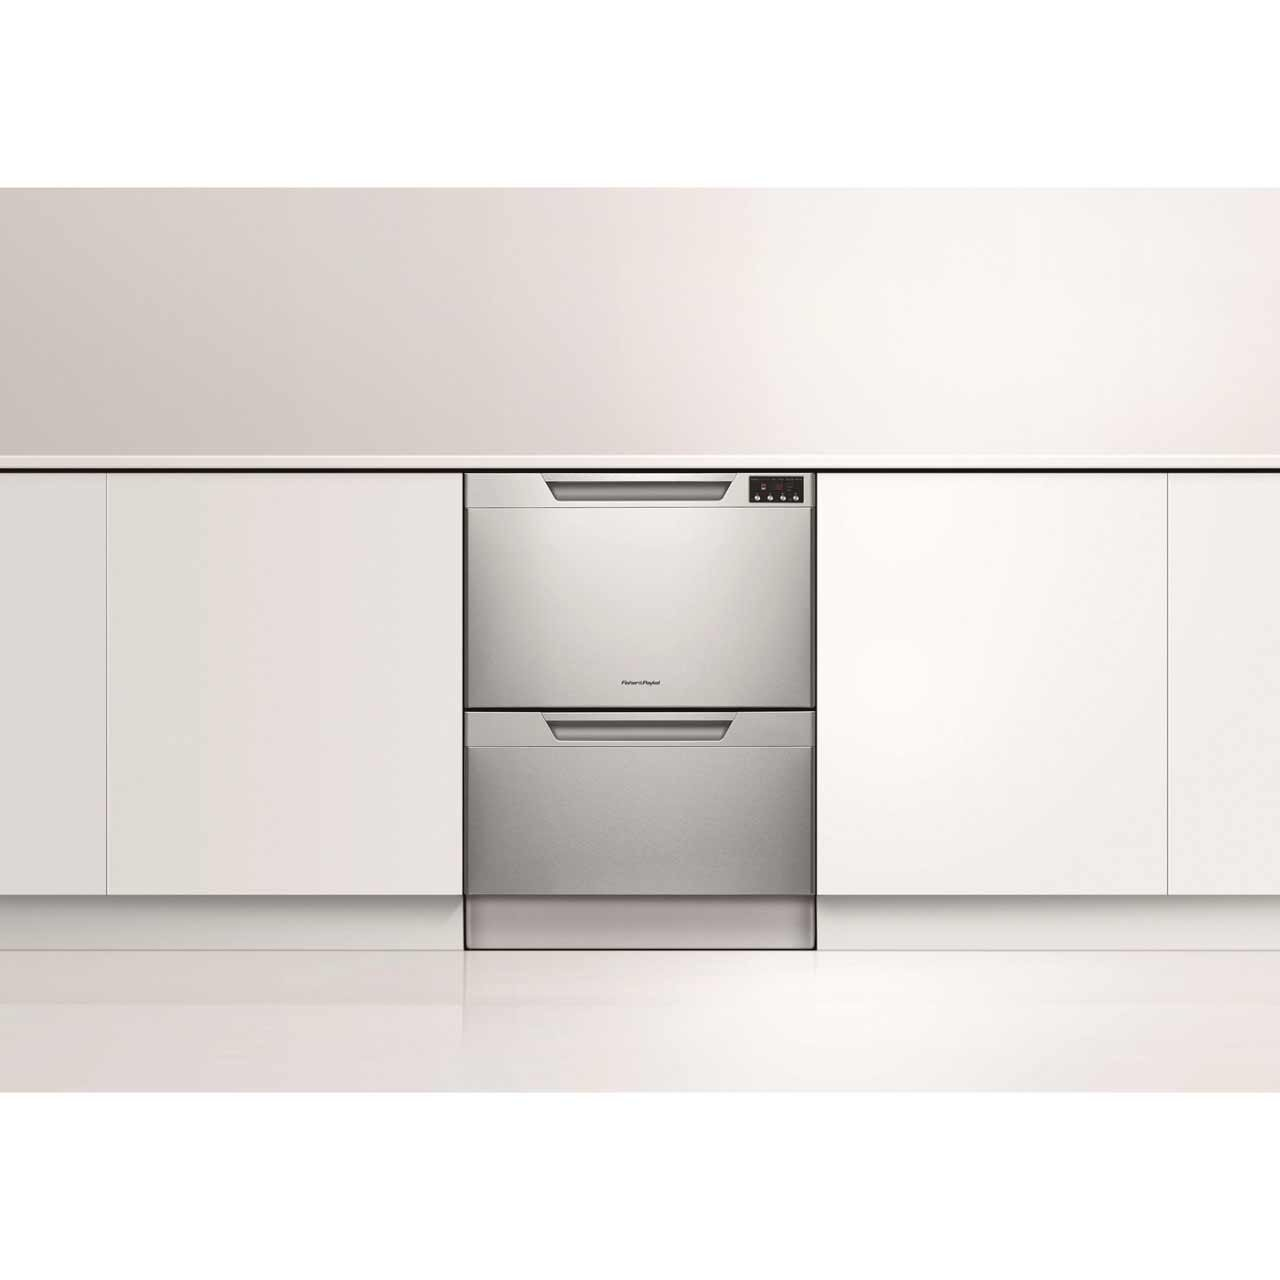 and kitchen exterior dishwashers dishwasher with double paykel dishdrawer drawers appliances harvey fisher